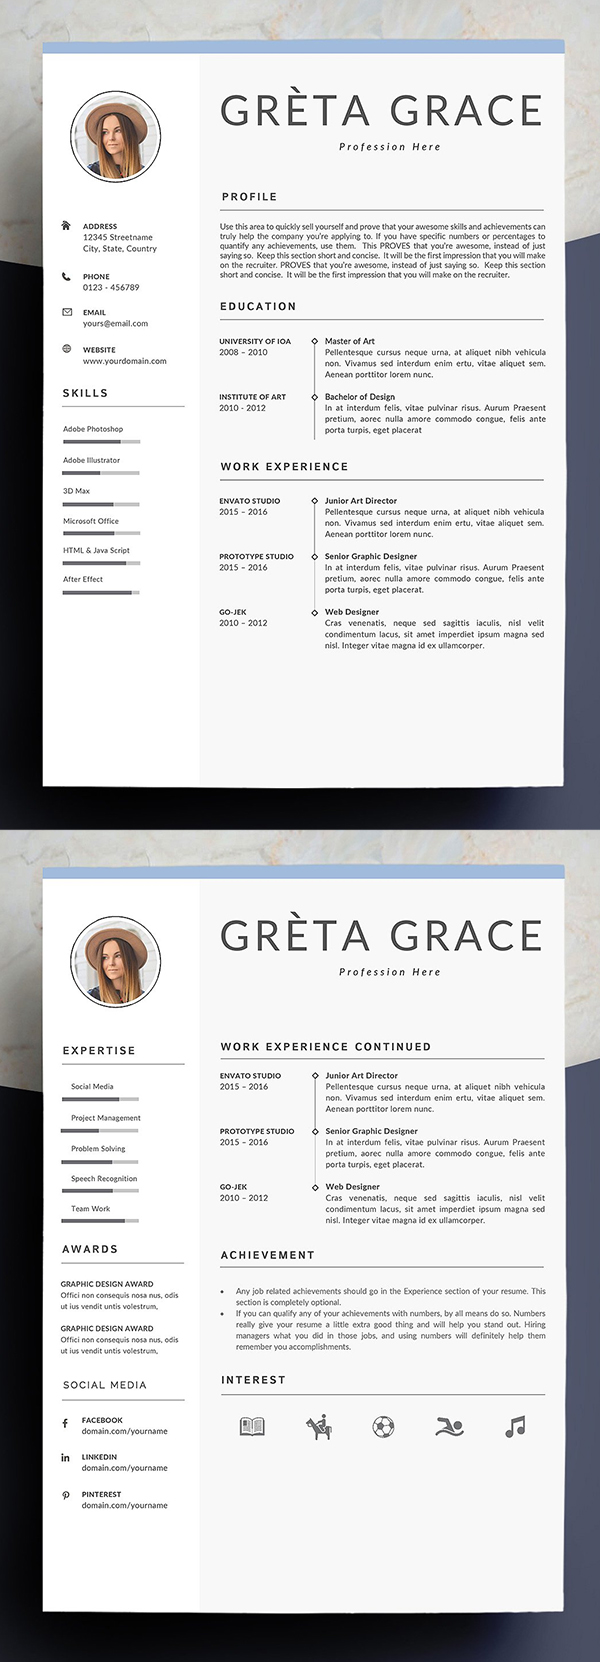 Professional Resume Template | Clove